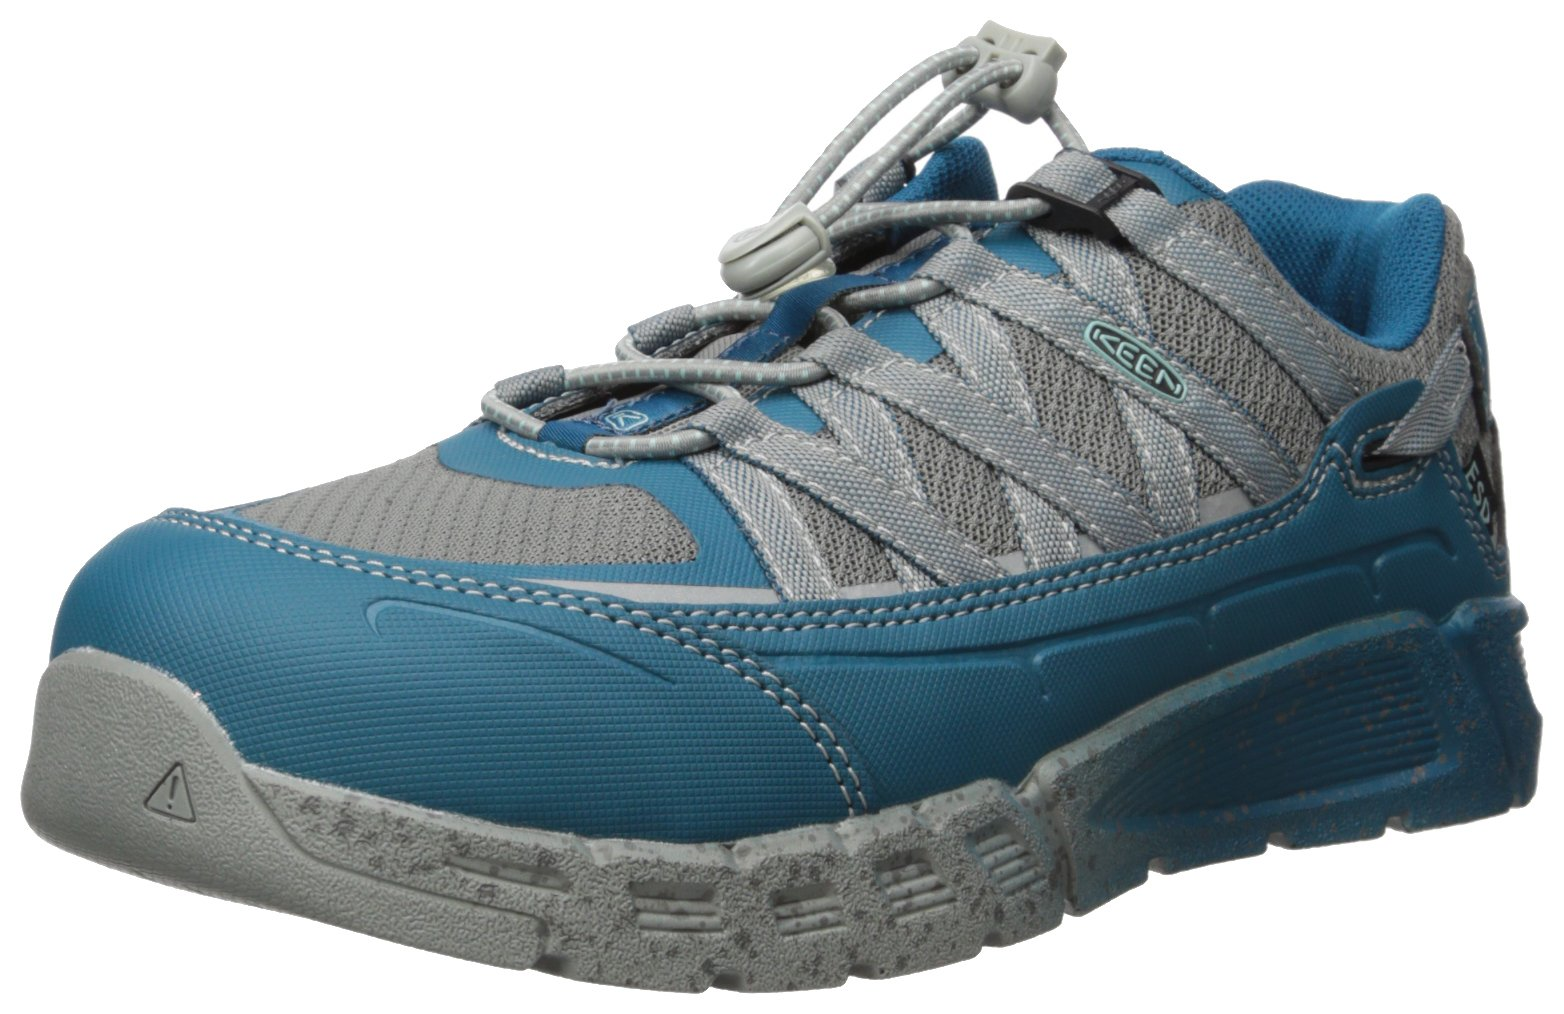 KEEN Utility Women's Asheville at ESD Industrial and Construction Shoe, Ink Blue/Eggshell Blue, 7.5 W US